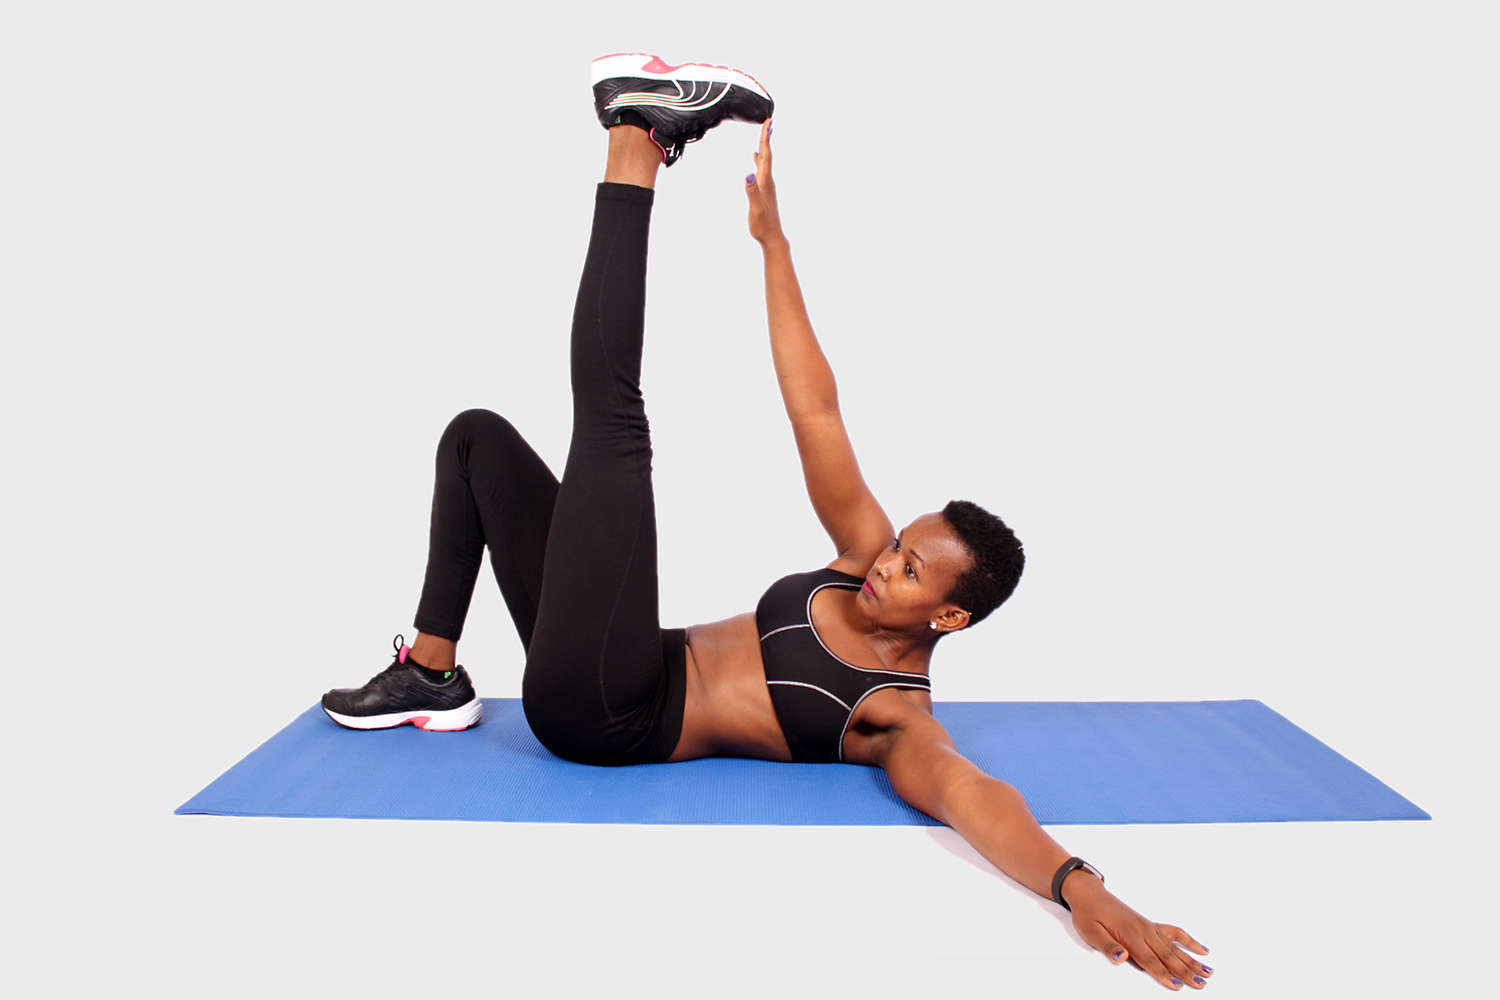 Fitness woman exercising on yoga mat with one arm and leg raised